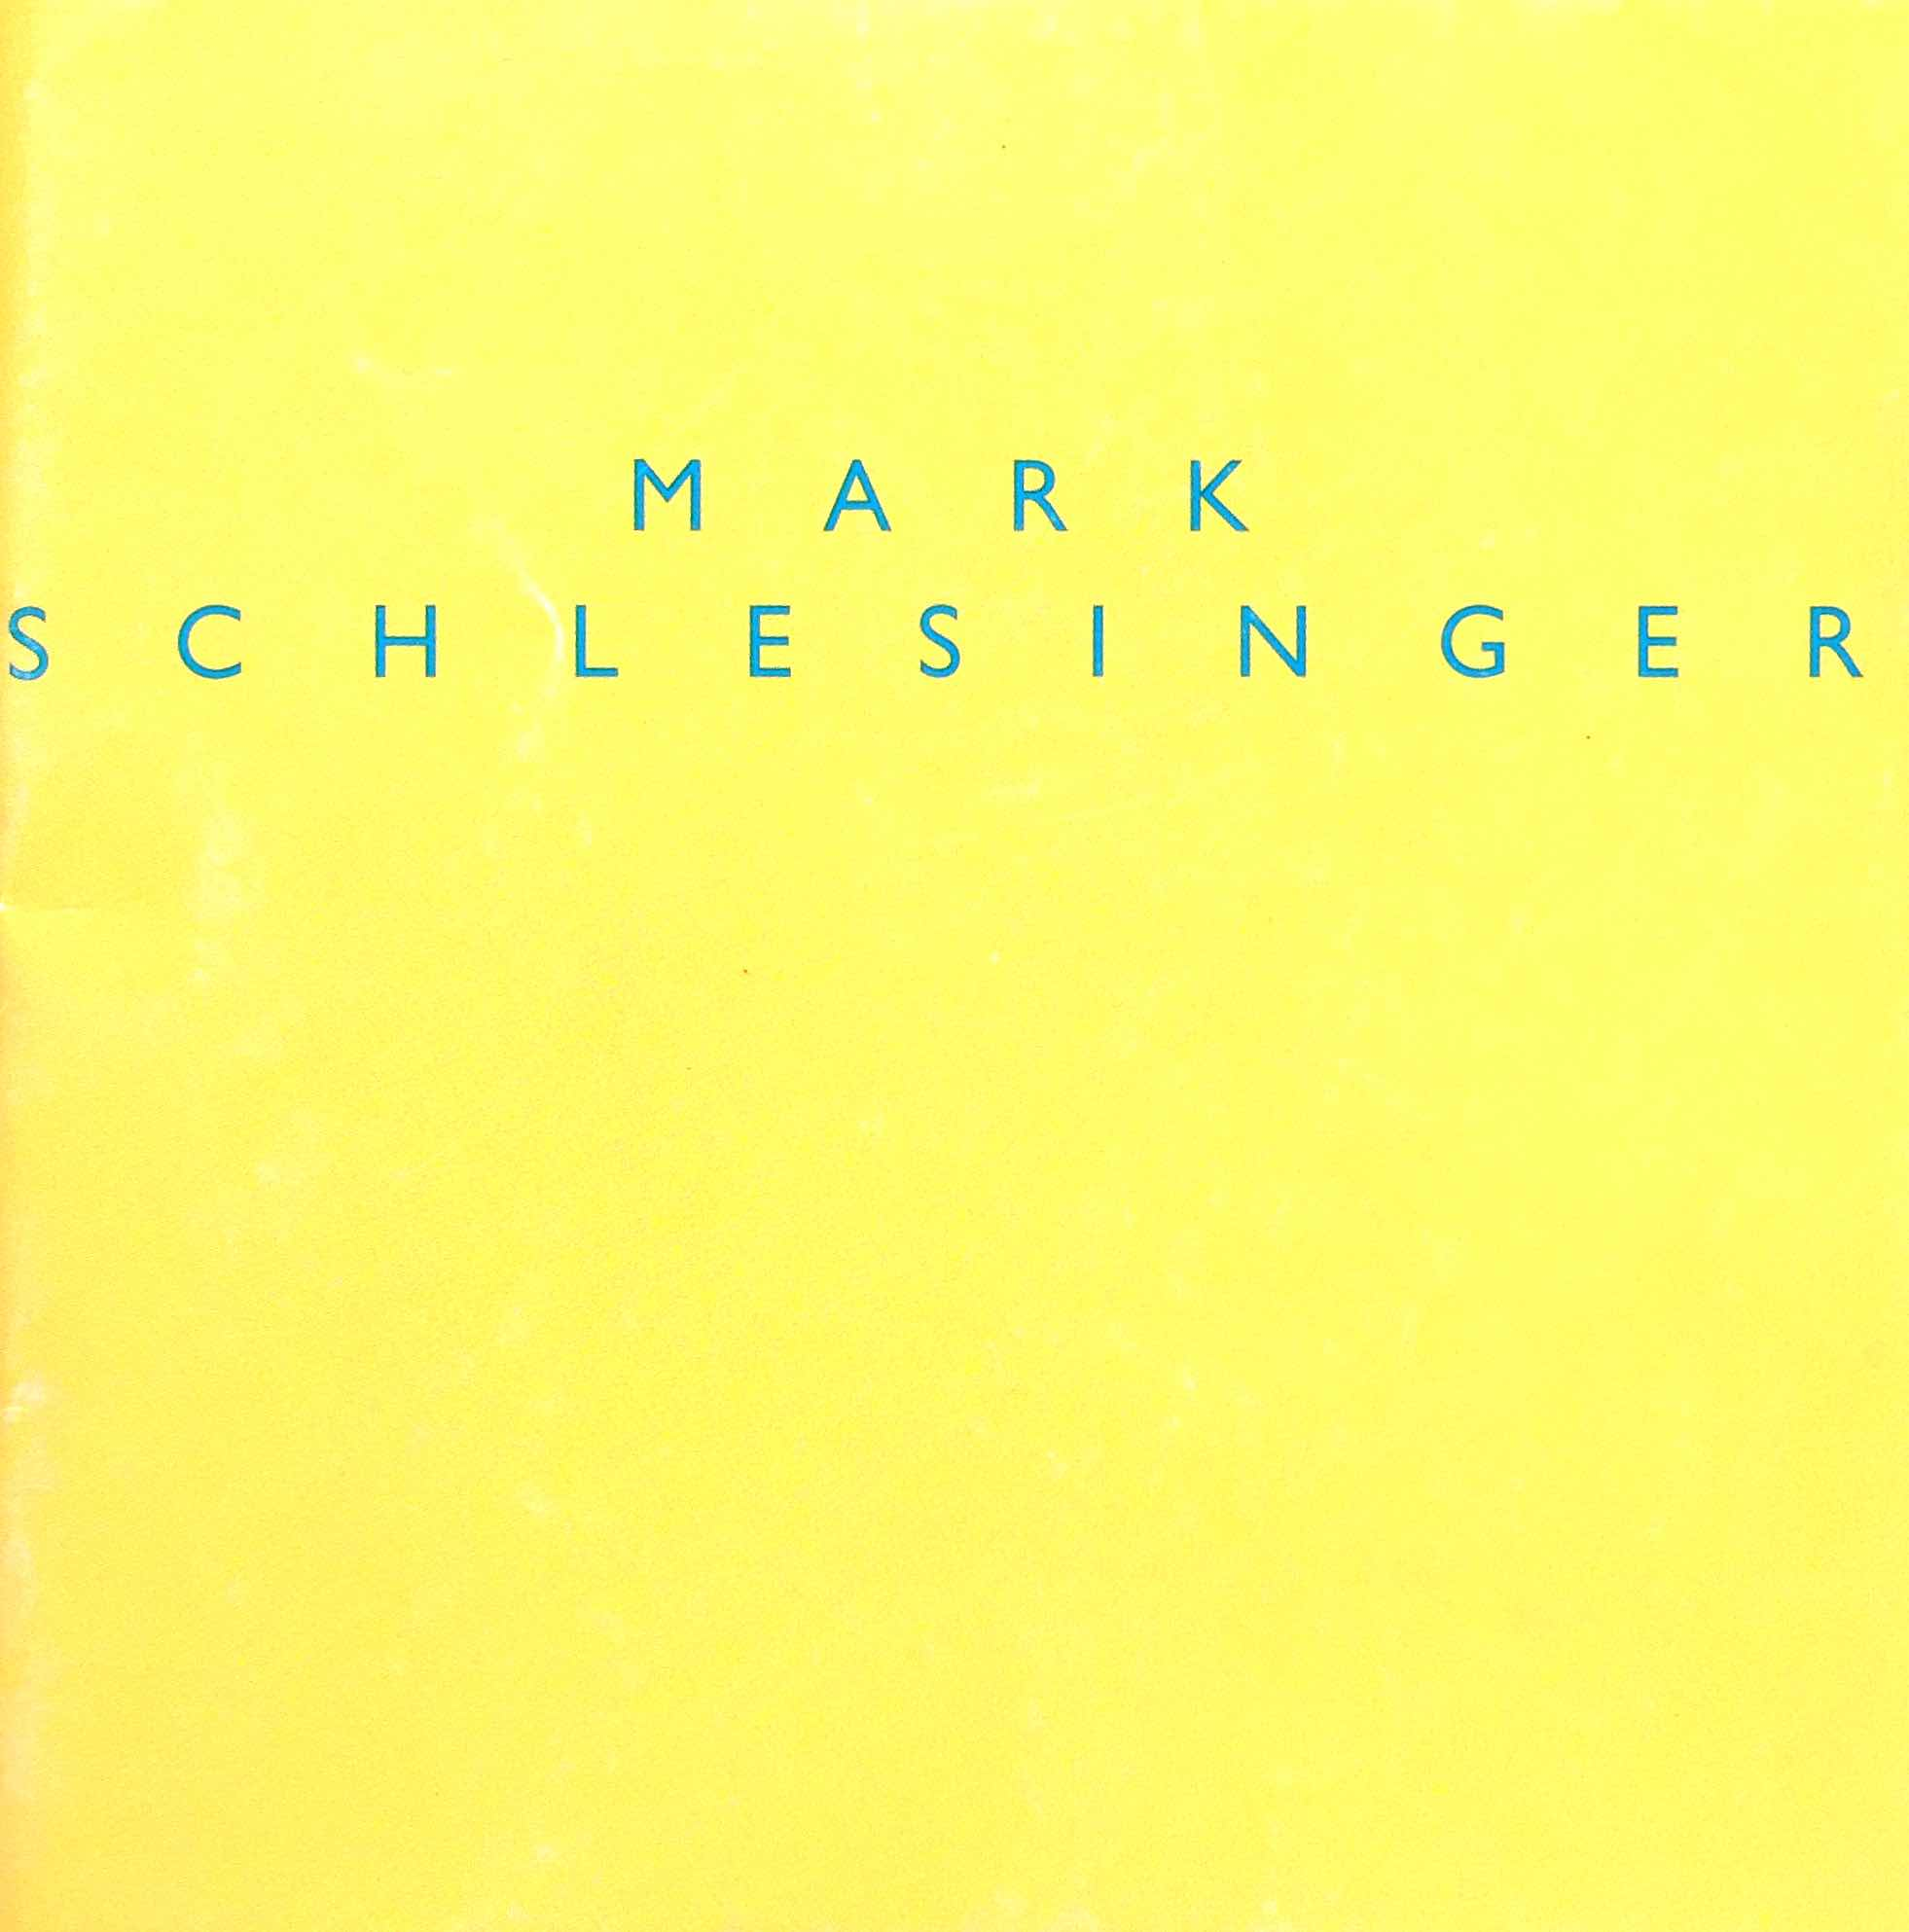 Download Catalog   Mark Schlesinger  Essay by Carina Plath. When is Painting? Tradition and Topicality in the Paintings of Mark Schlesinger.  1996-1997. Rolf Hengesbach, Wuppertal, Germany.